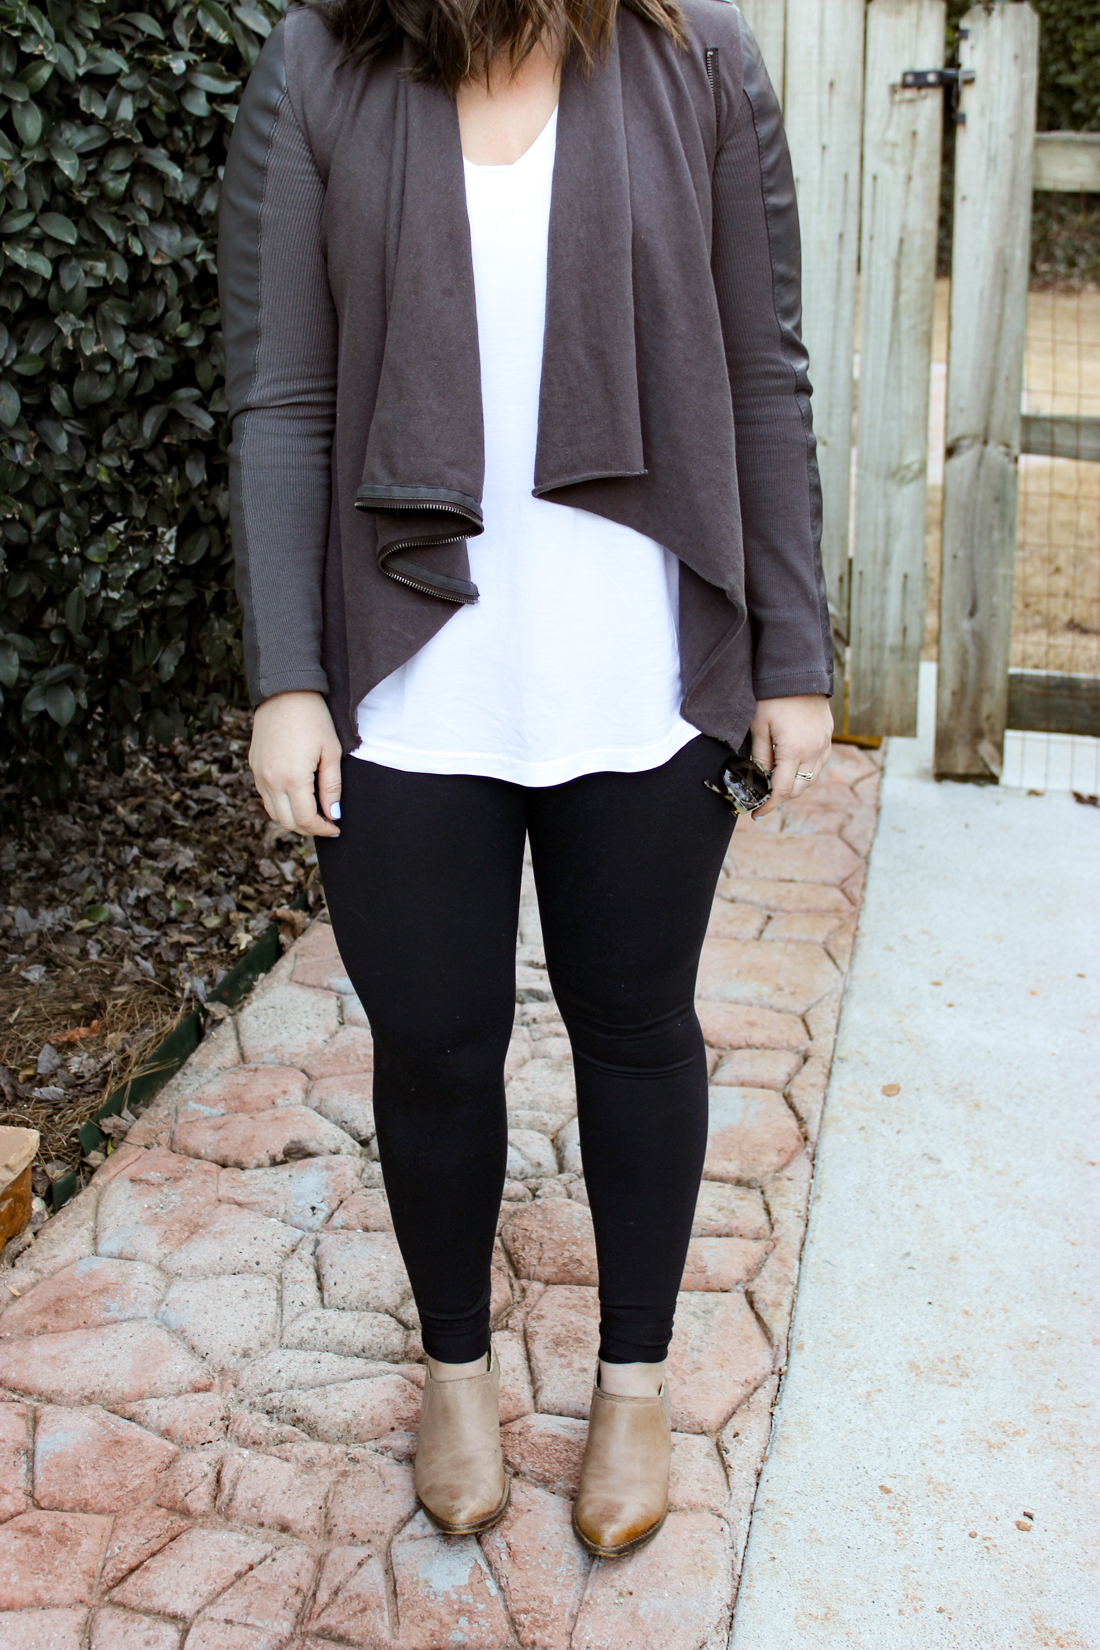 Leather Jacket Outfit | Just Peachy Blog